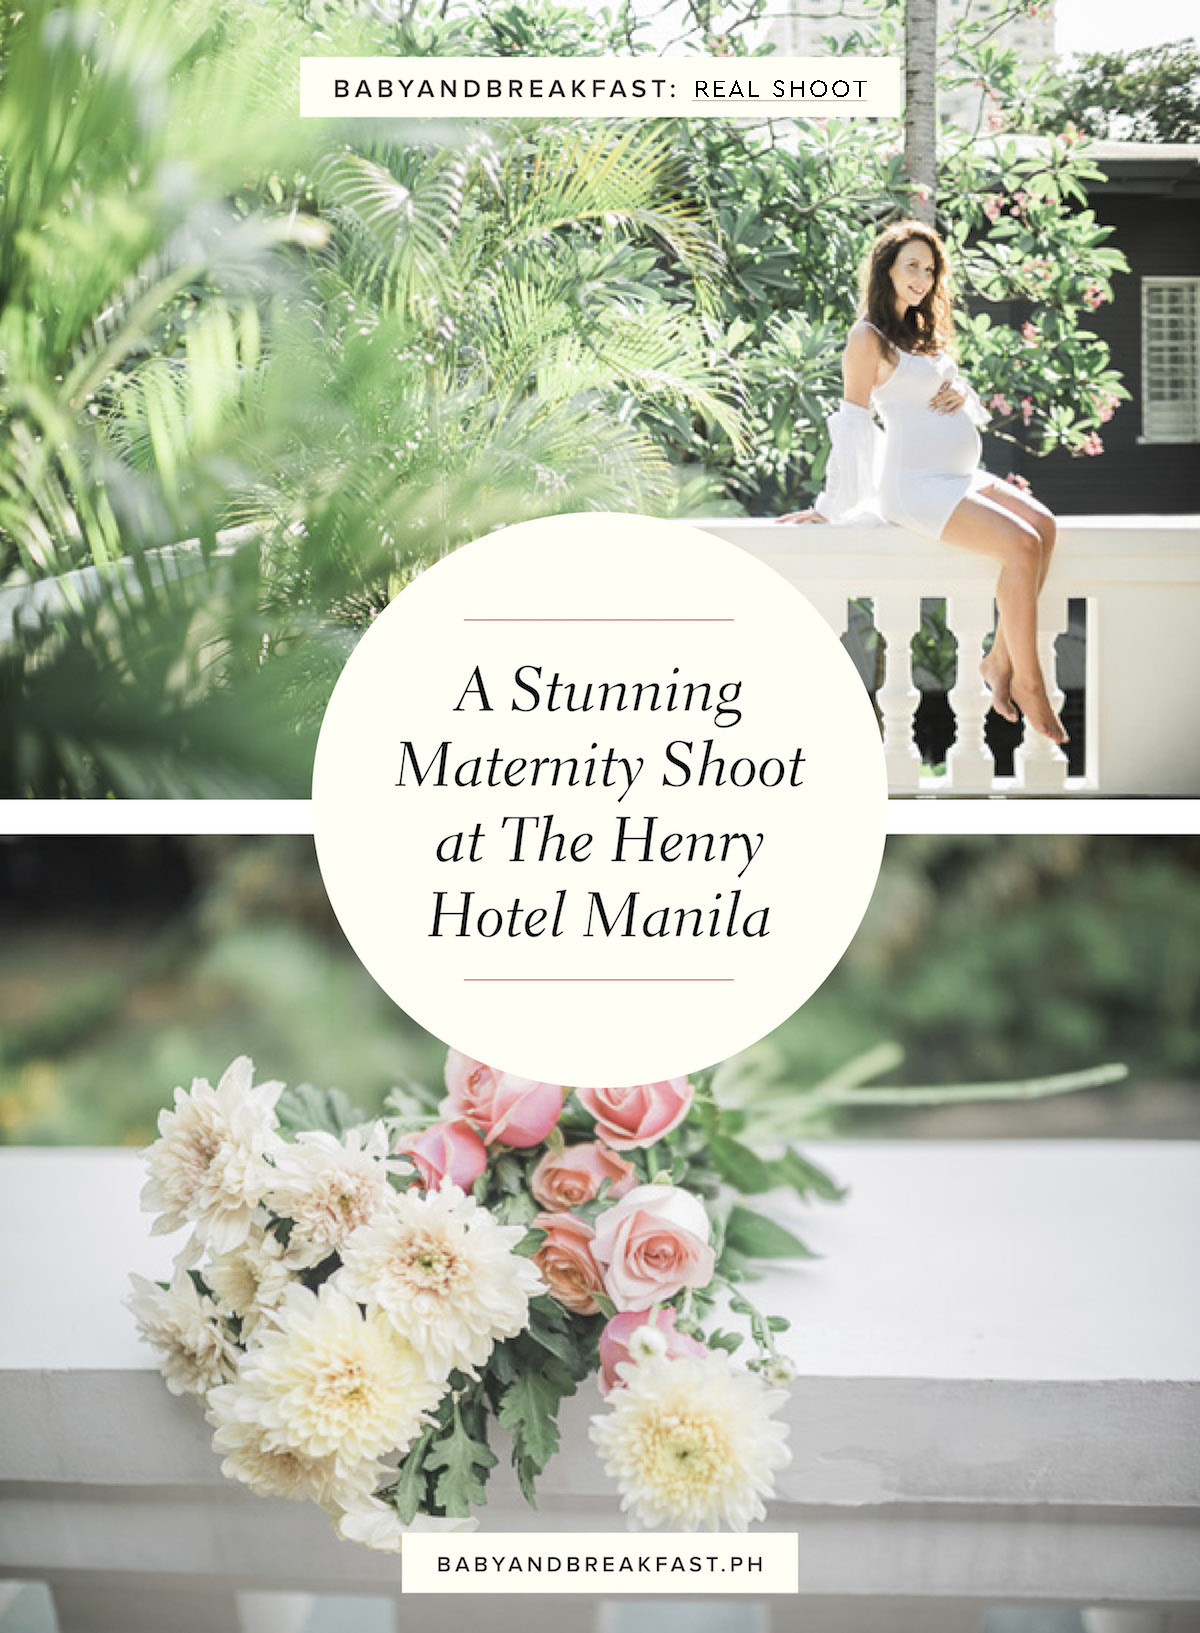 Baby and Breakfast: Real Shoot A Stunning Maternity Shoot at The Henry Hotel Manila